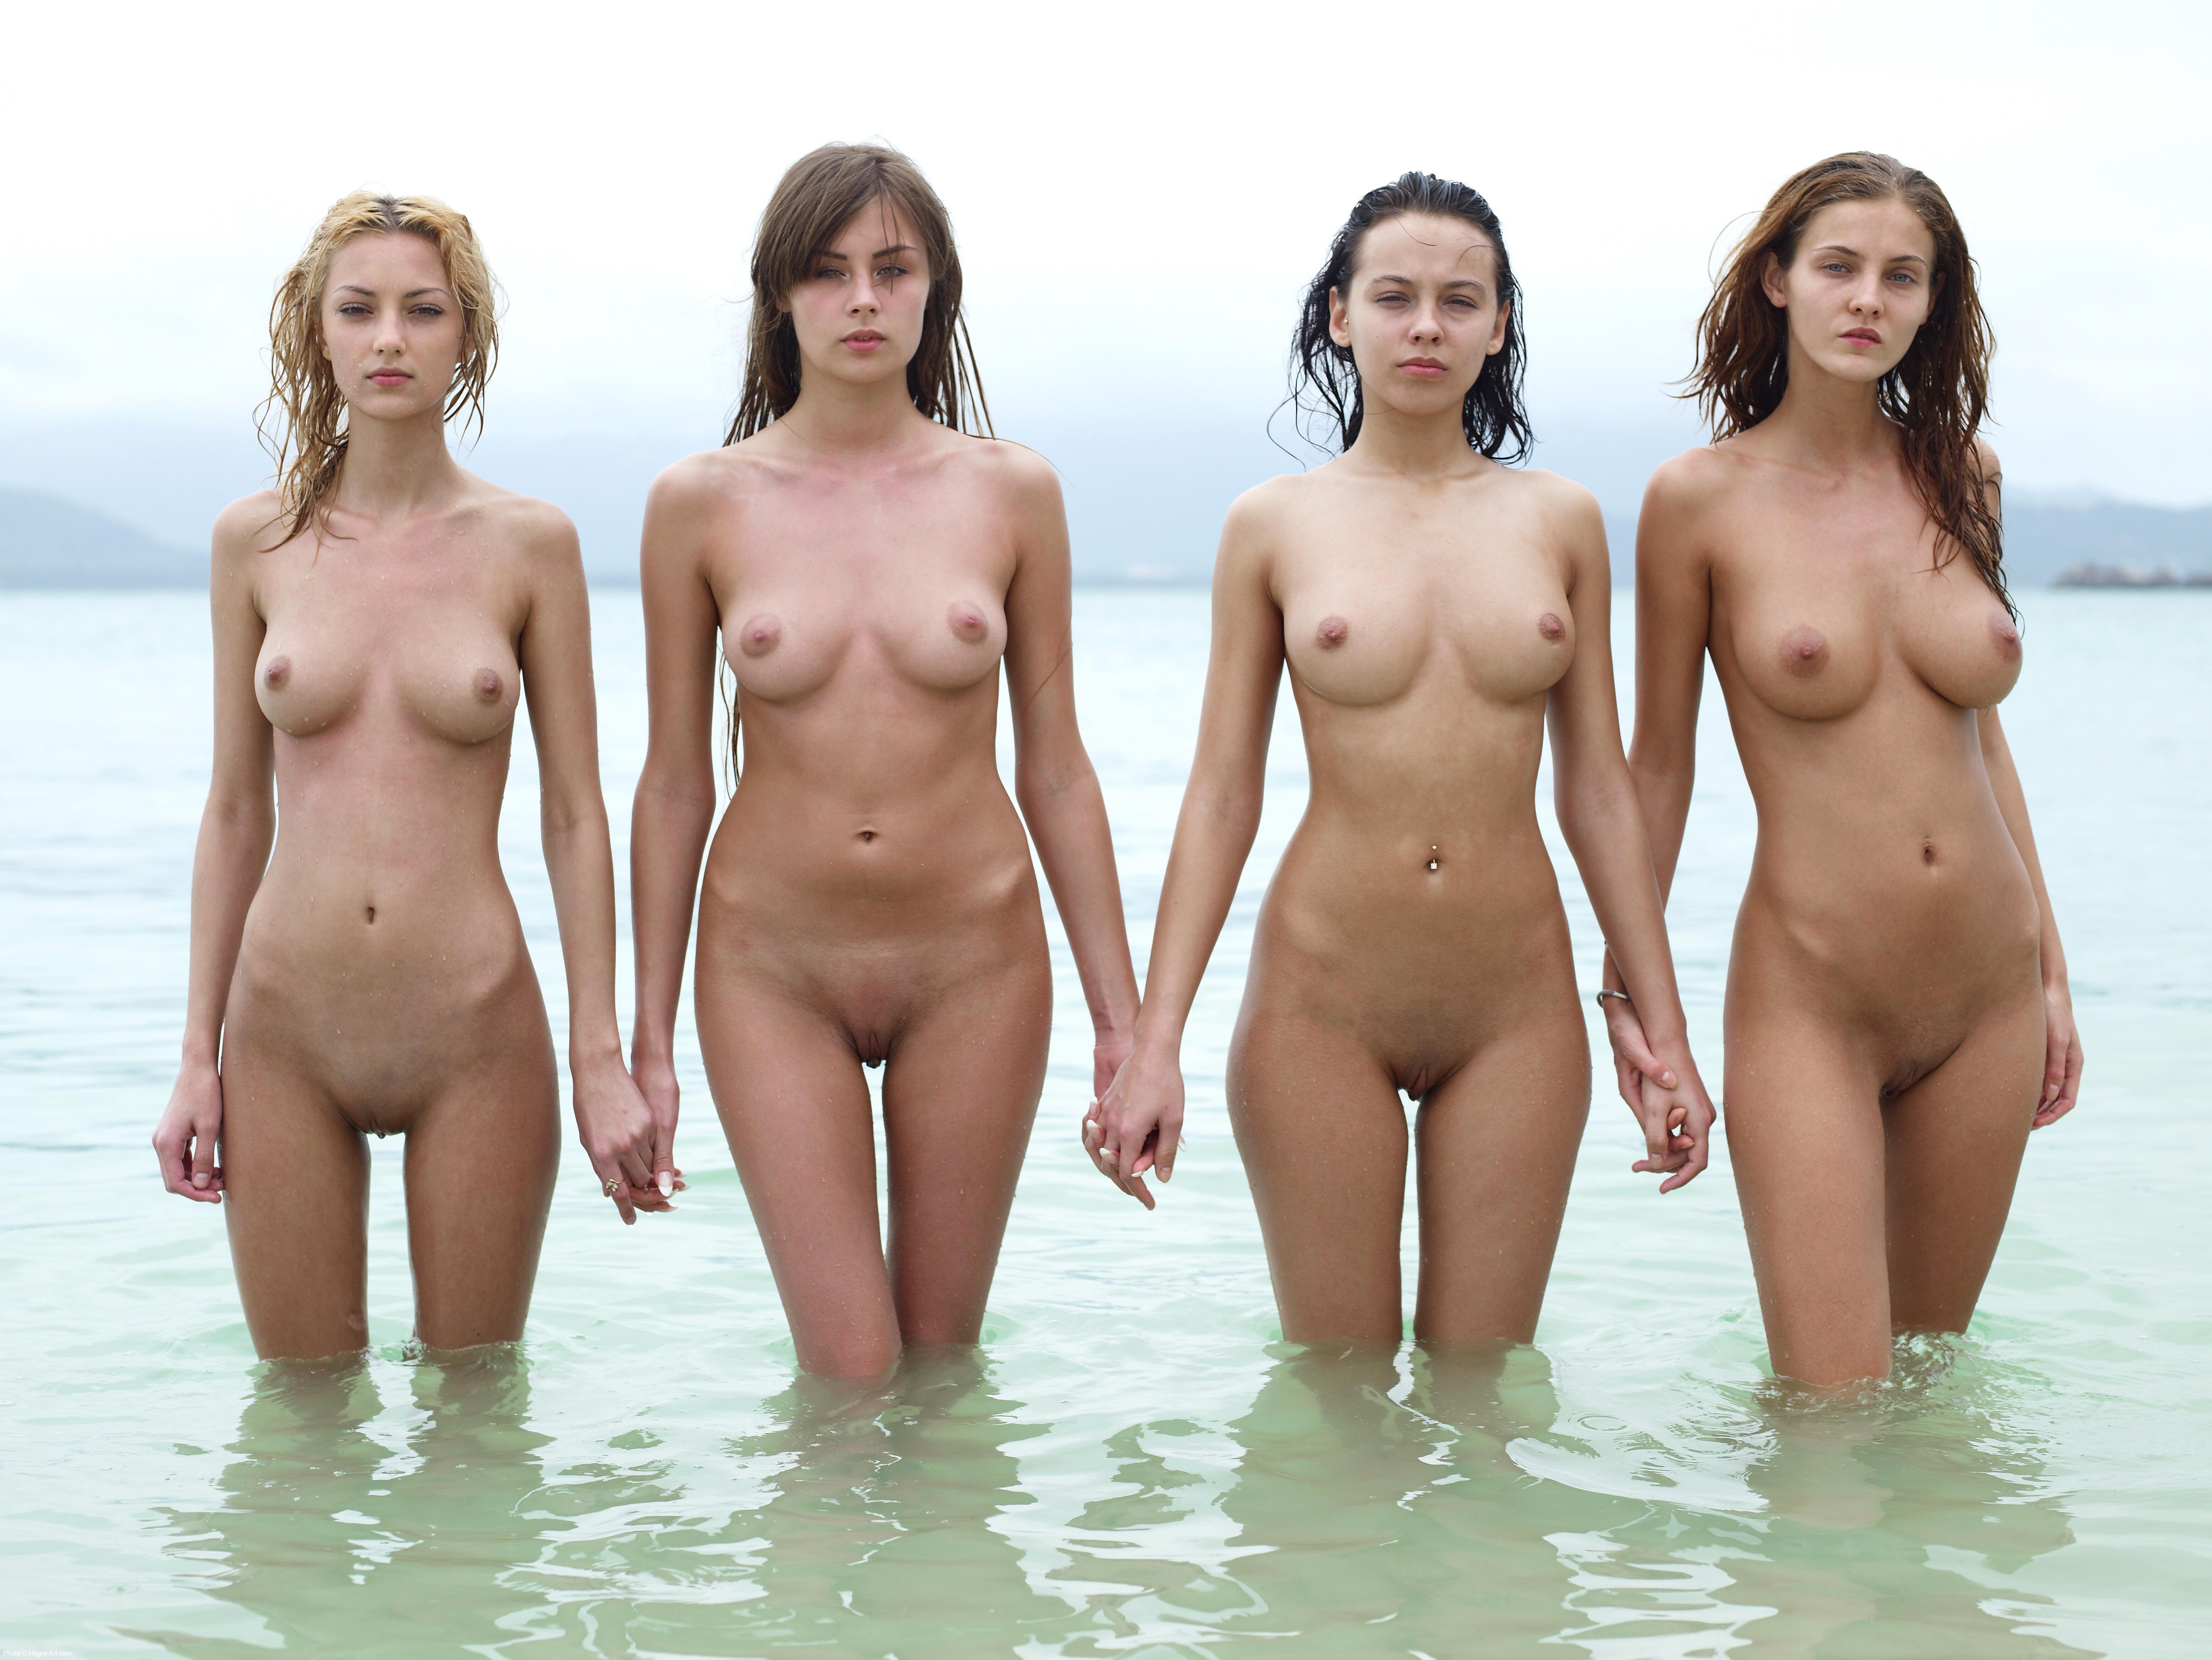 Hot nude group girls apologise, but